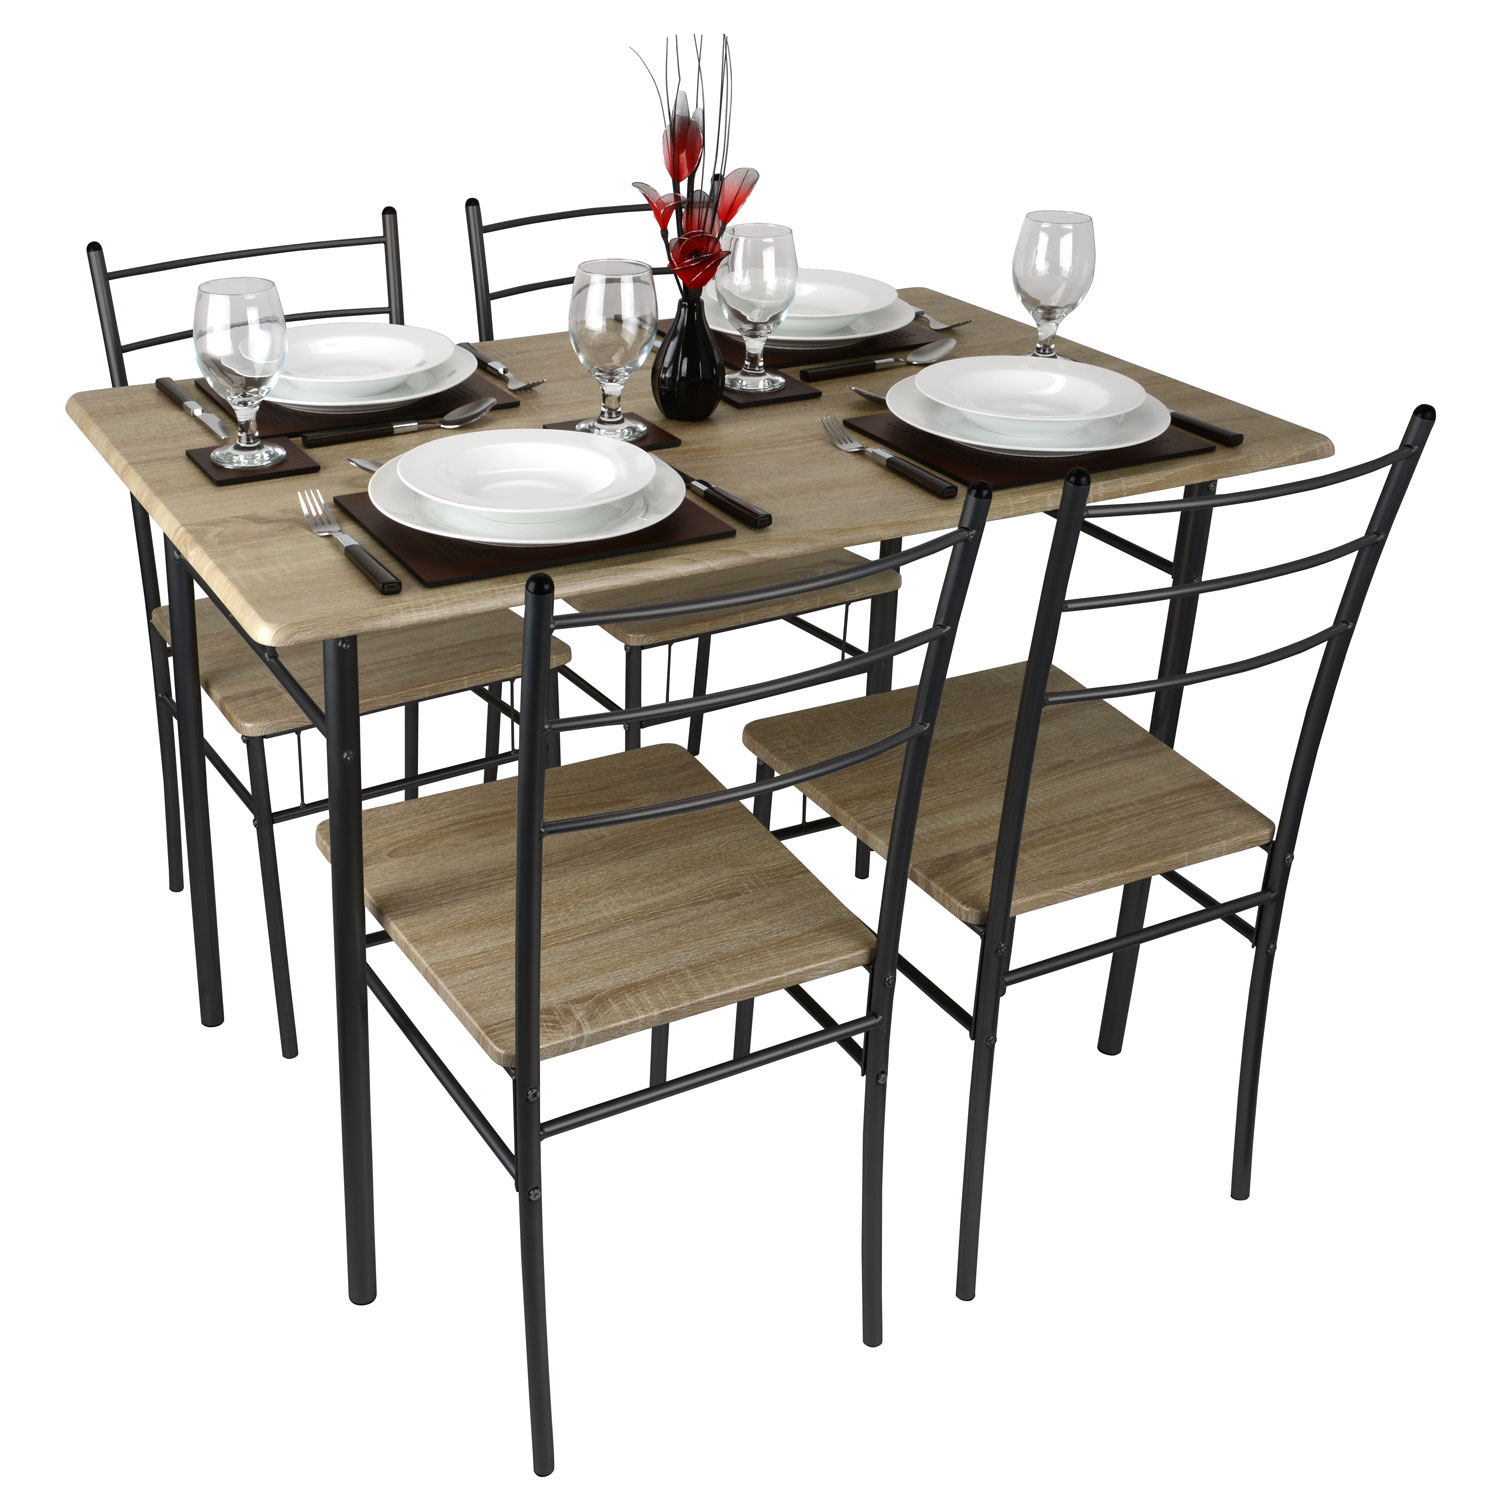 4 chair dining set and design 5 piece modern table chairs textured wood